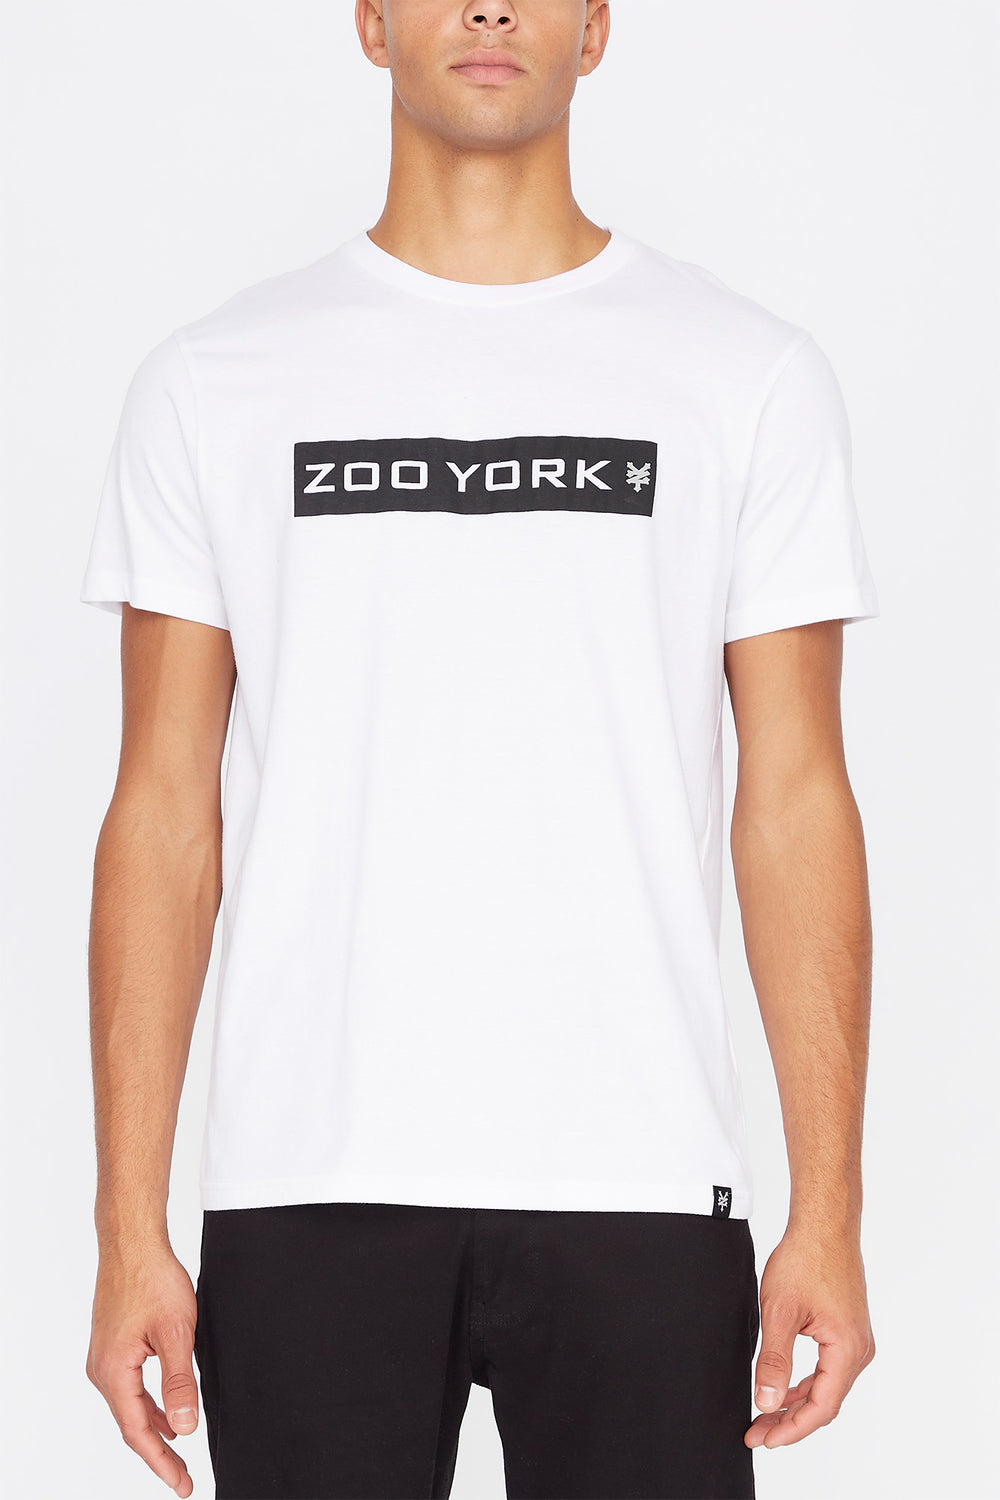 Zoo York Mens Box Logo T-Shirt White